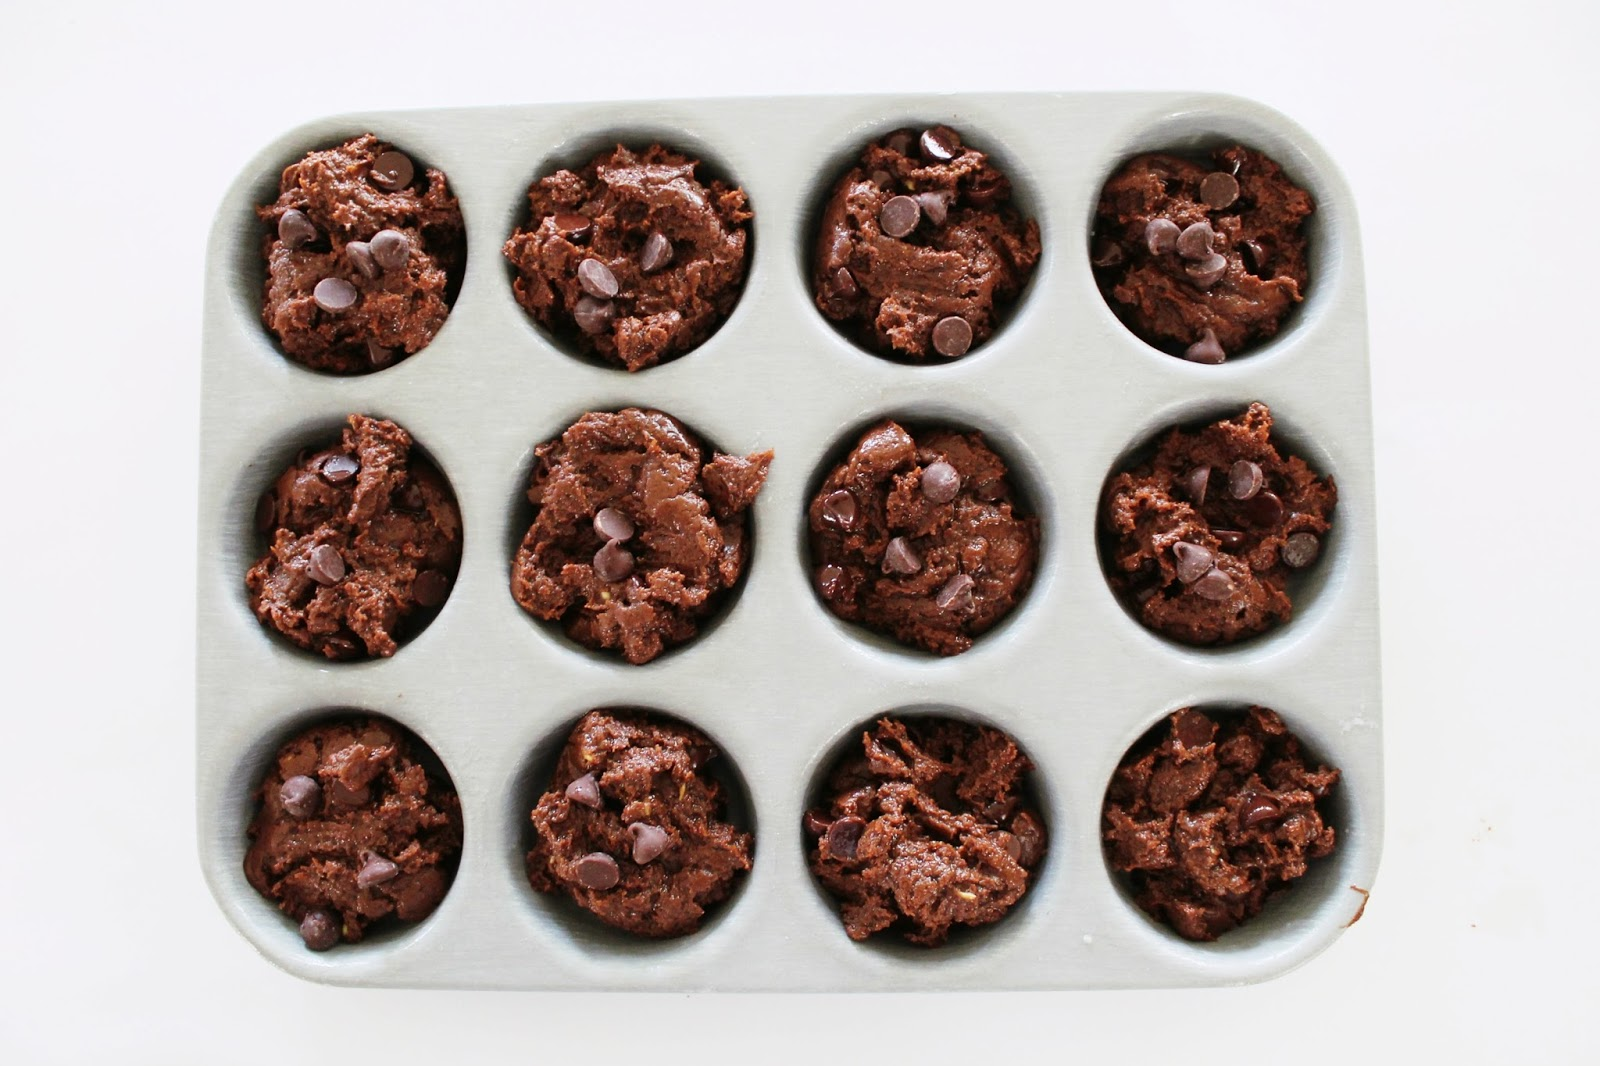 Guilt Free Chocolate Avocado Muffins, gluten free cake recipe, gluten free muffins, chocolate muffins recipe, chocolate gluten free cake recipe, avocado cake